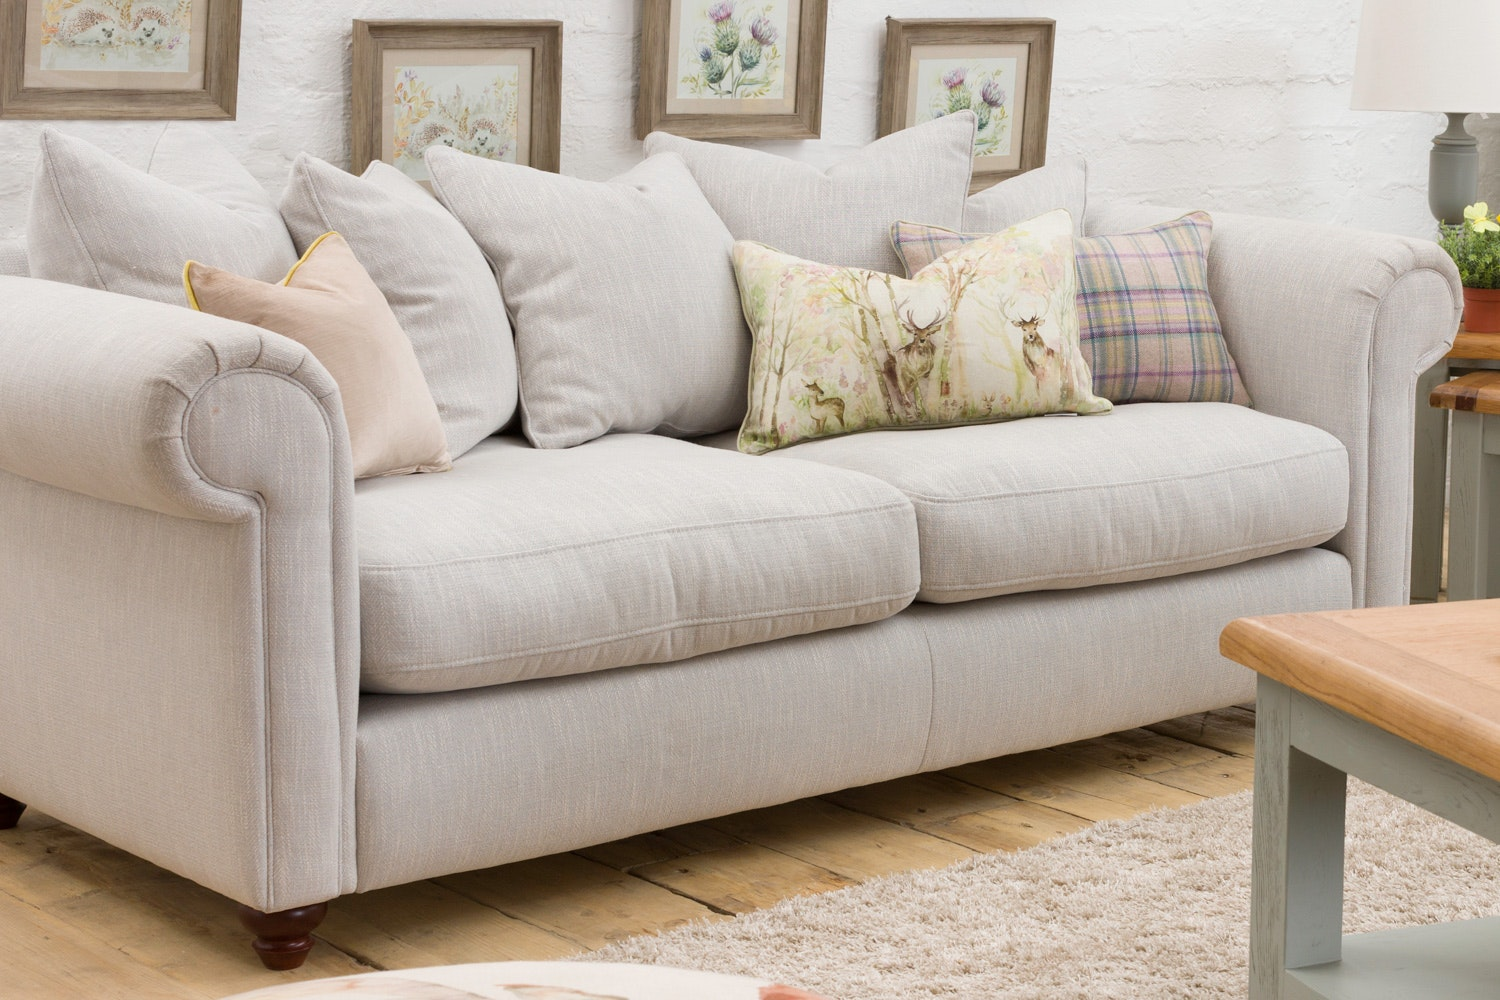 Teya 4 Seater Sofa